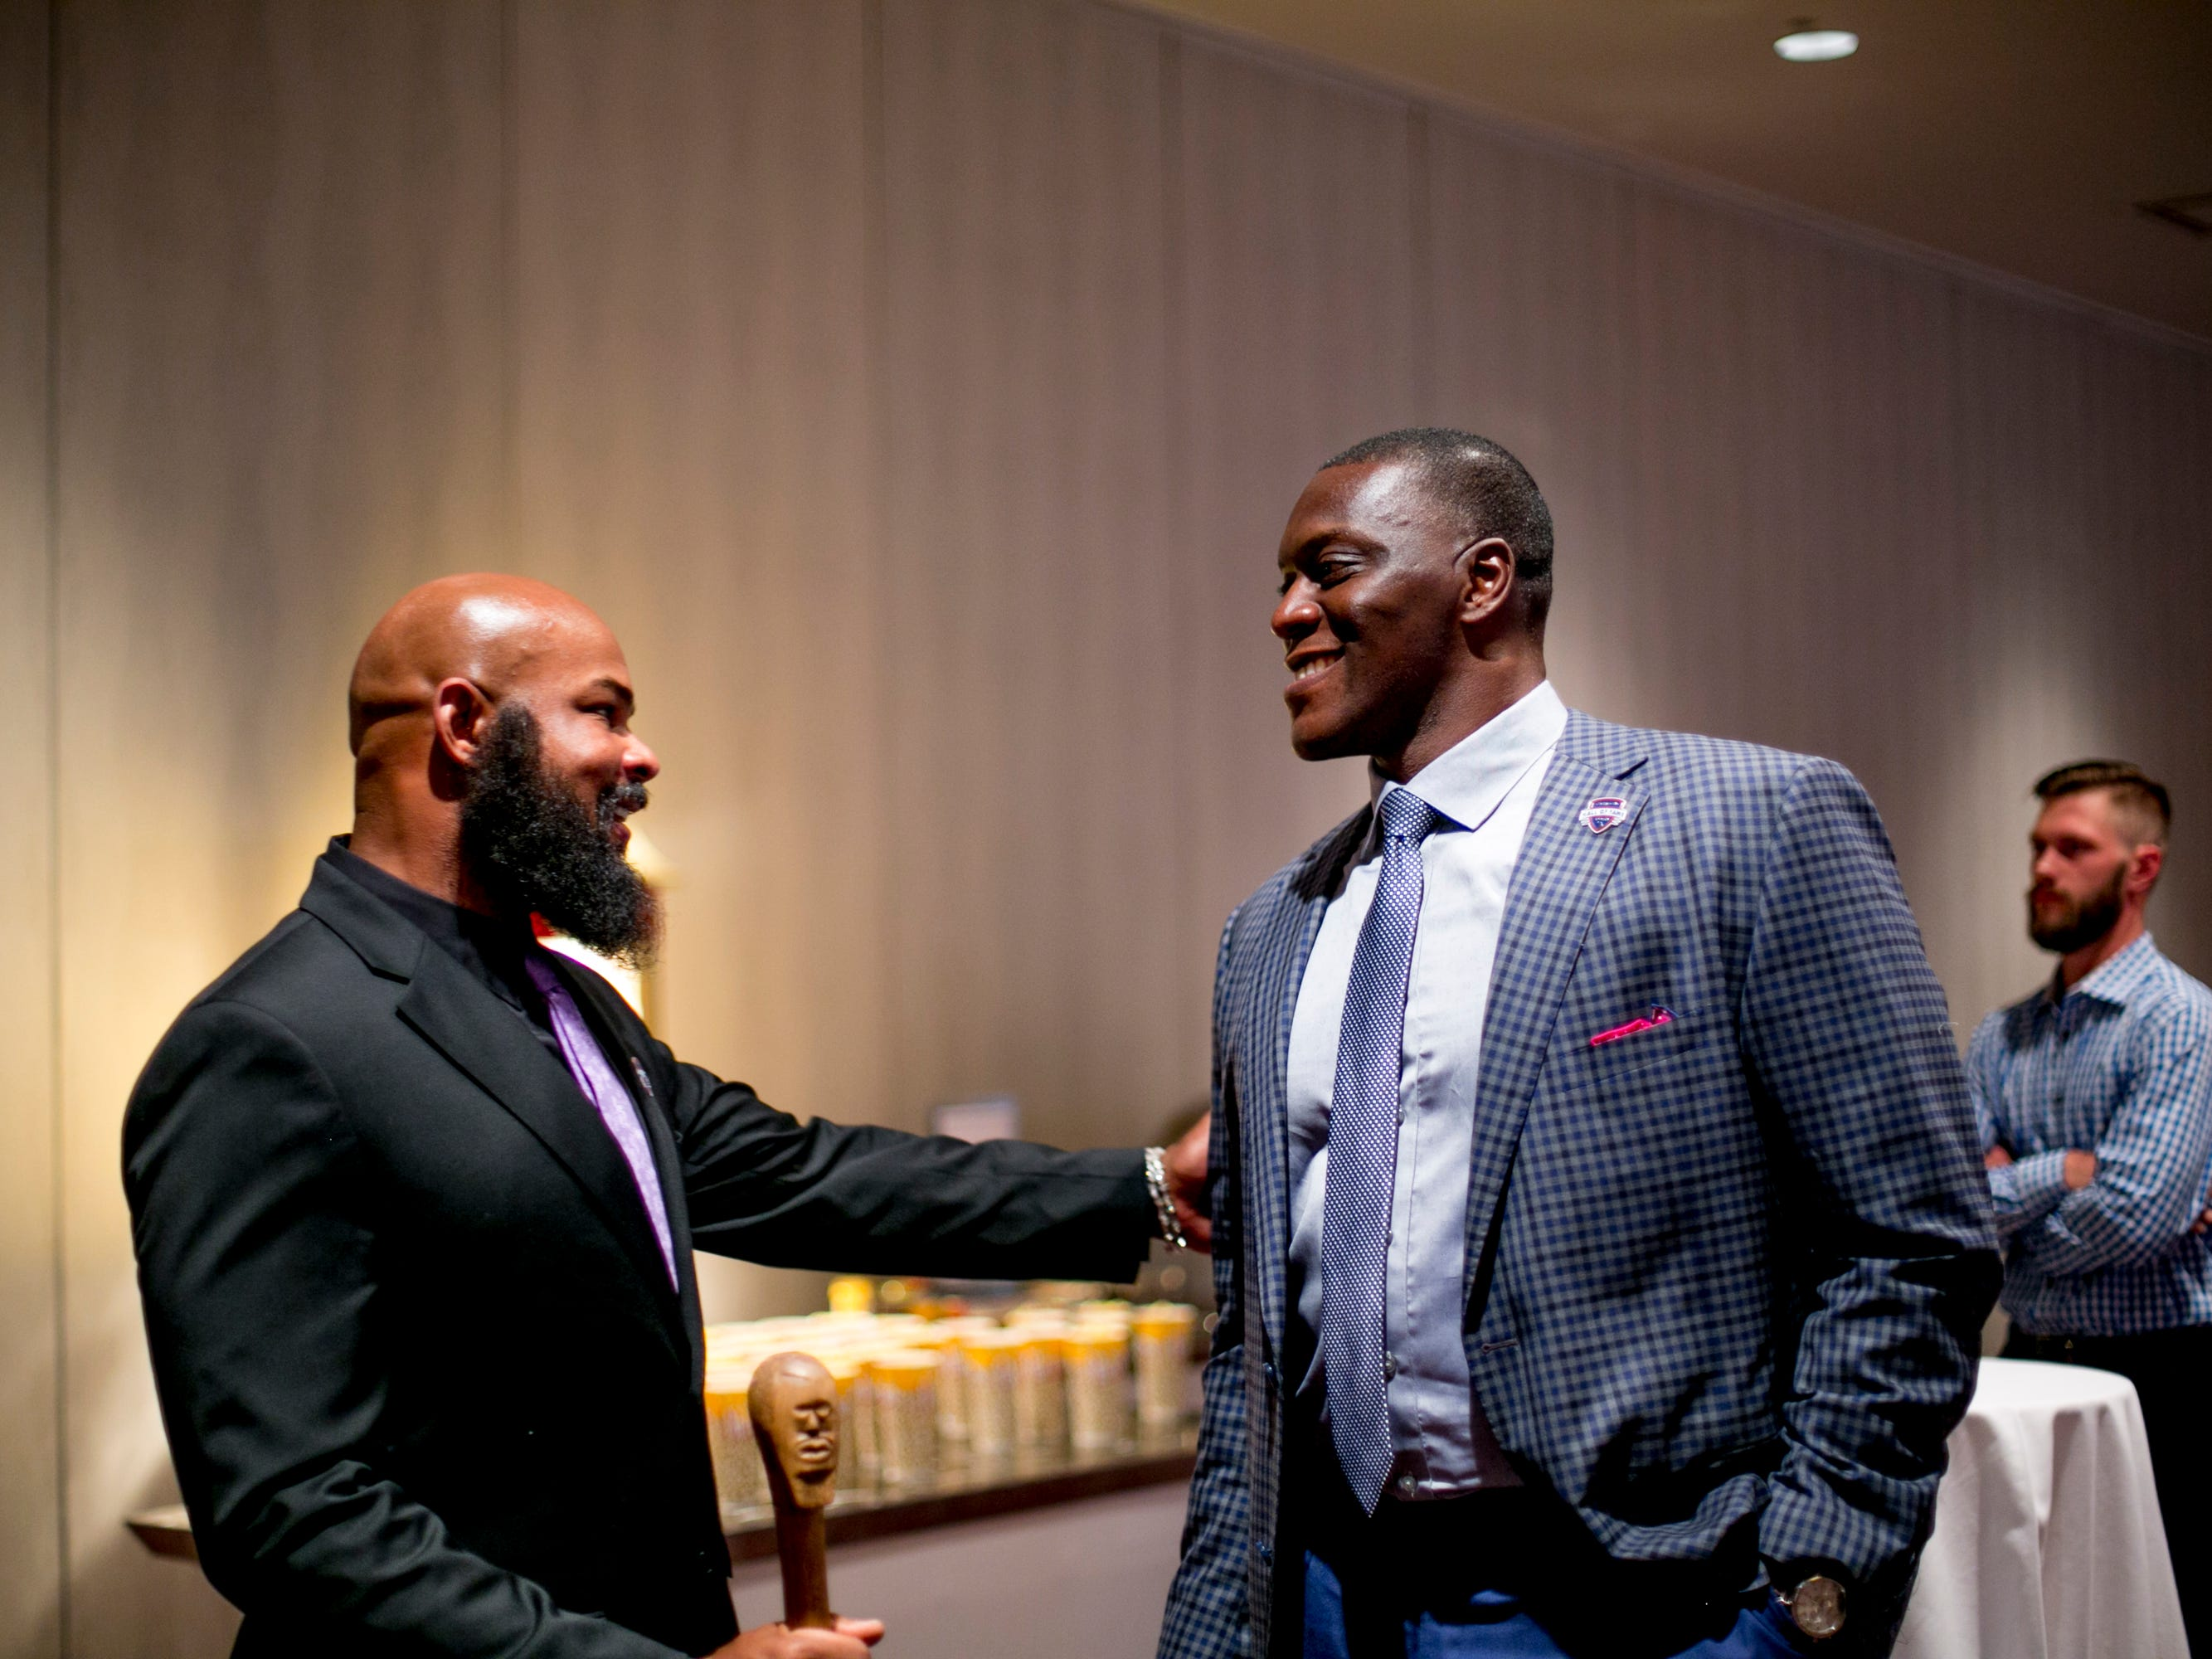 Former MSU running back T.J. Duckett (left) speaks to former Detroit Lions defensive end Robert Porcher before both were inducted into the Michigan Sports Hall of Fame.